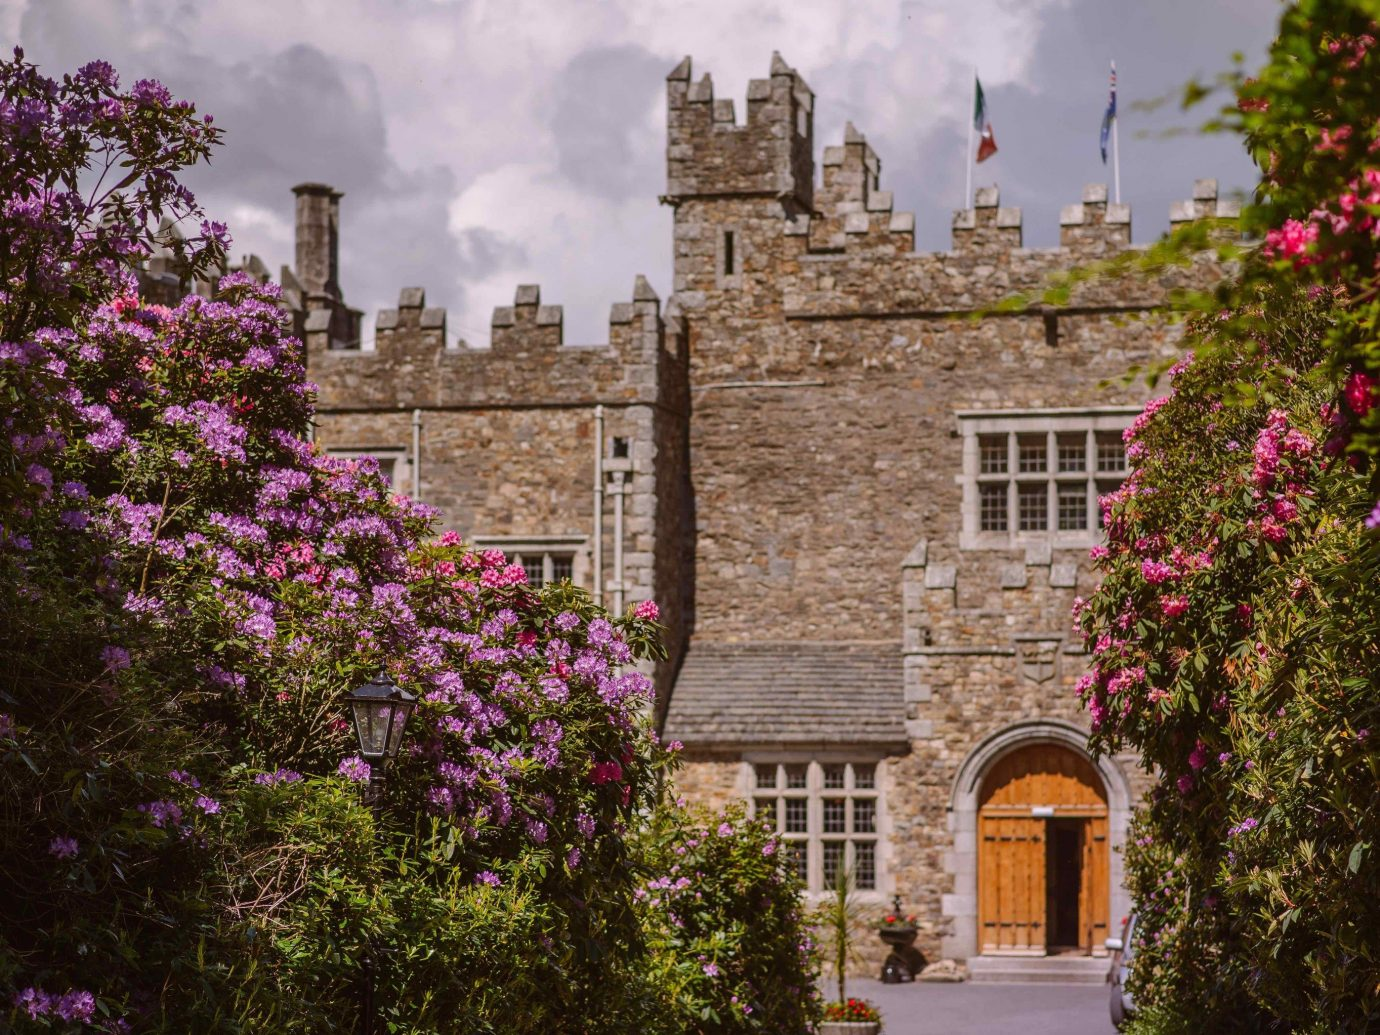 Hotels tree outdoor building sky flower City estate tourism château Garden old palace castle Courtyard stone surrounded crowd castle hotel Ireland